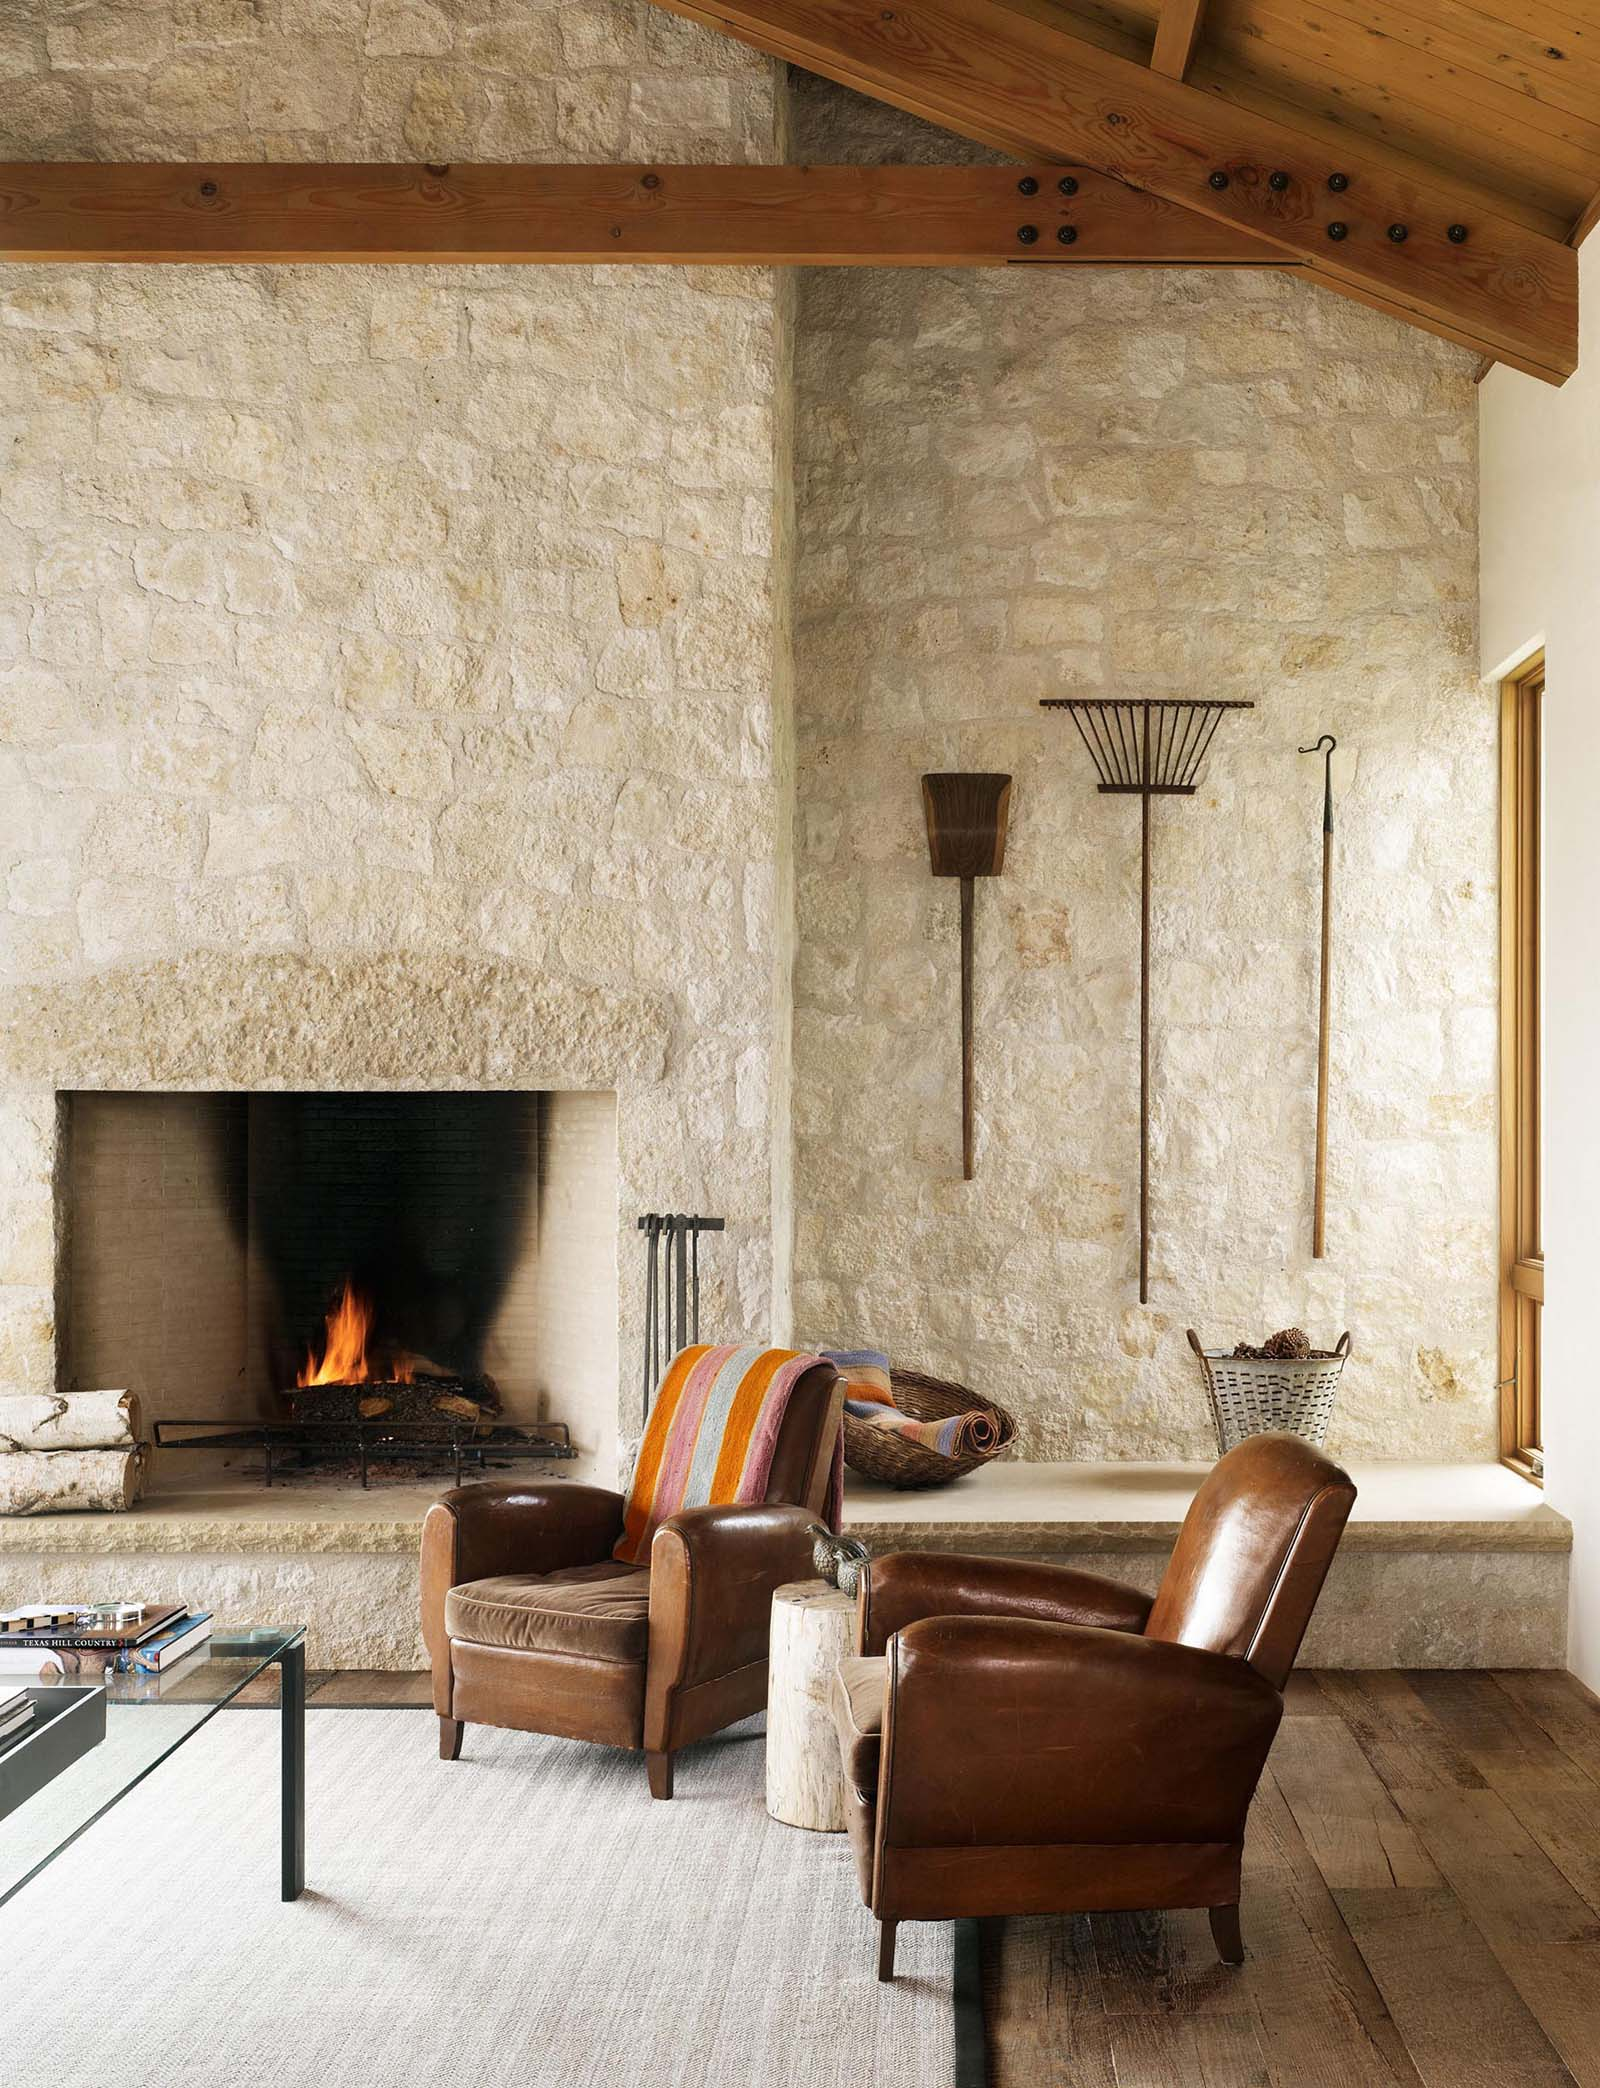 A living room with a limestone wall that surrounds the fireplace.